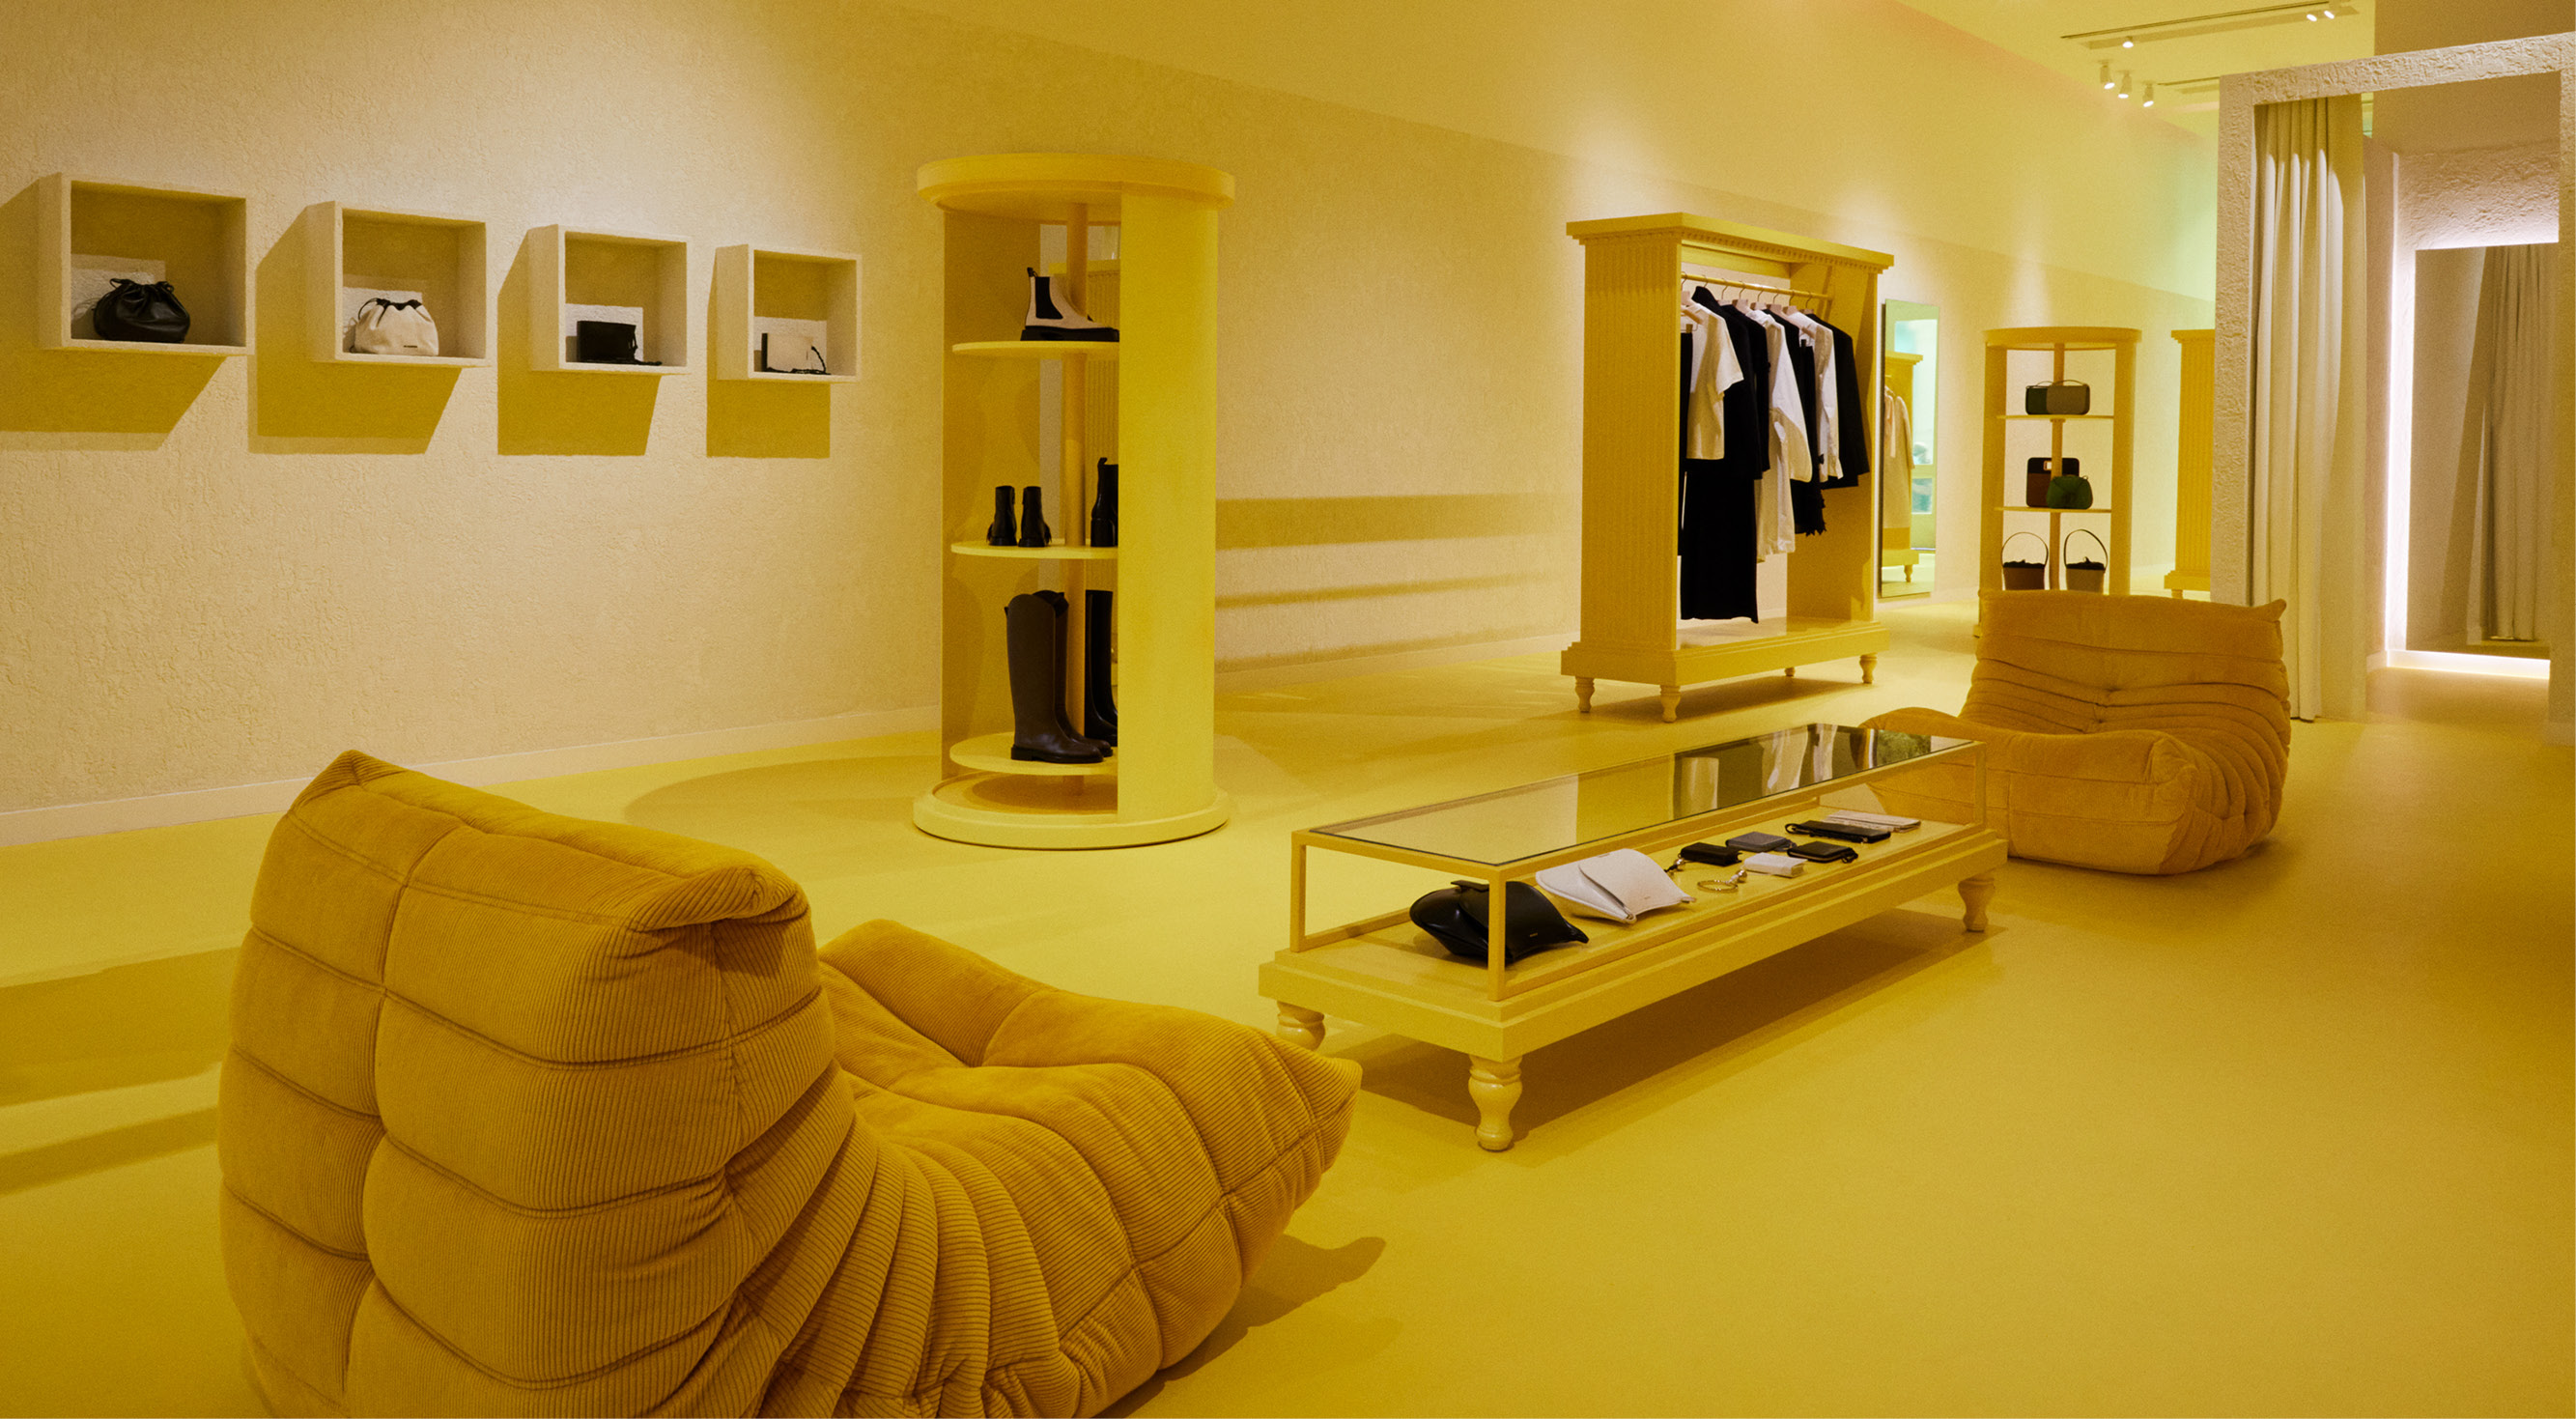 JIL SANDER LANDS IN NEW YORK WITH A SOHO MORPHING POP-UP